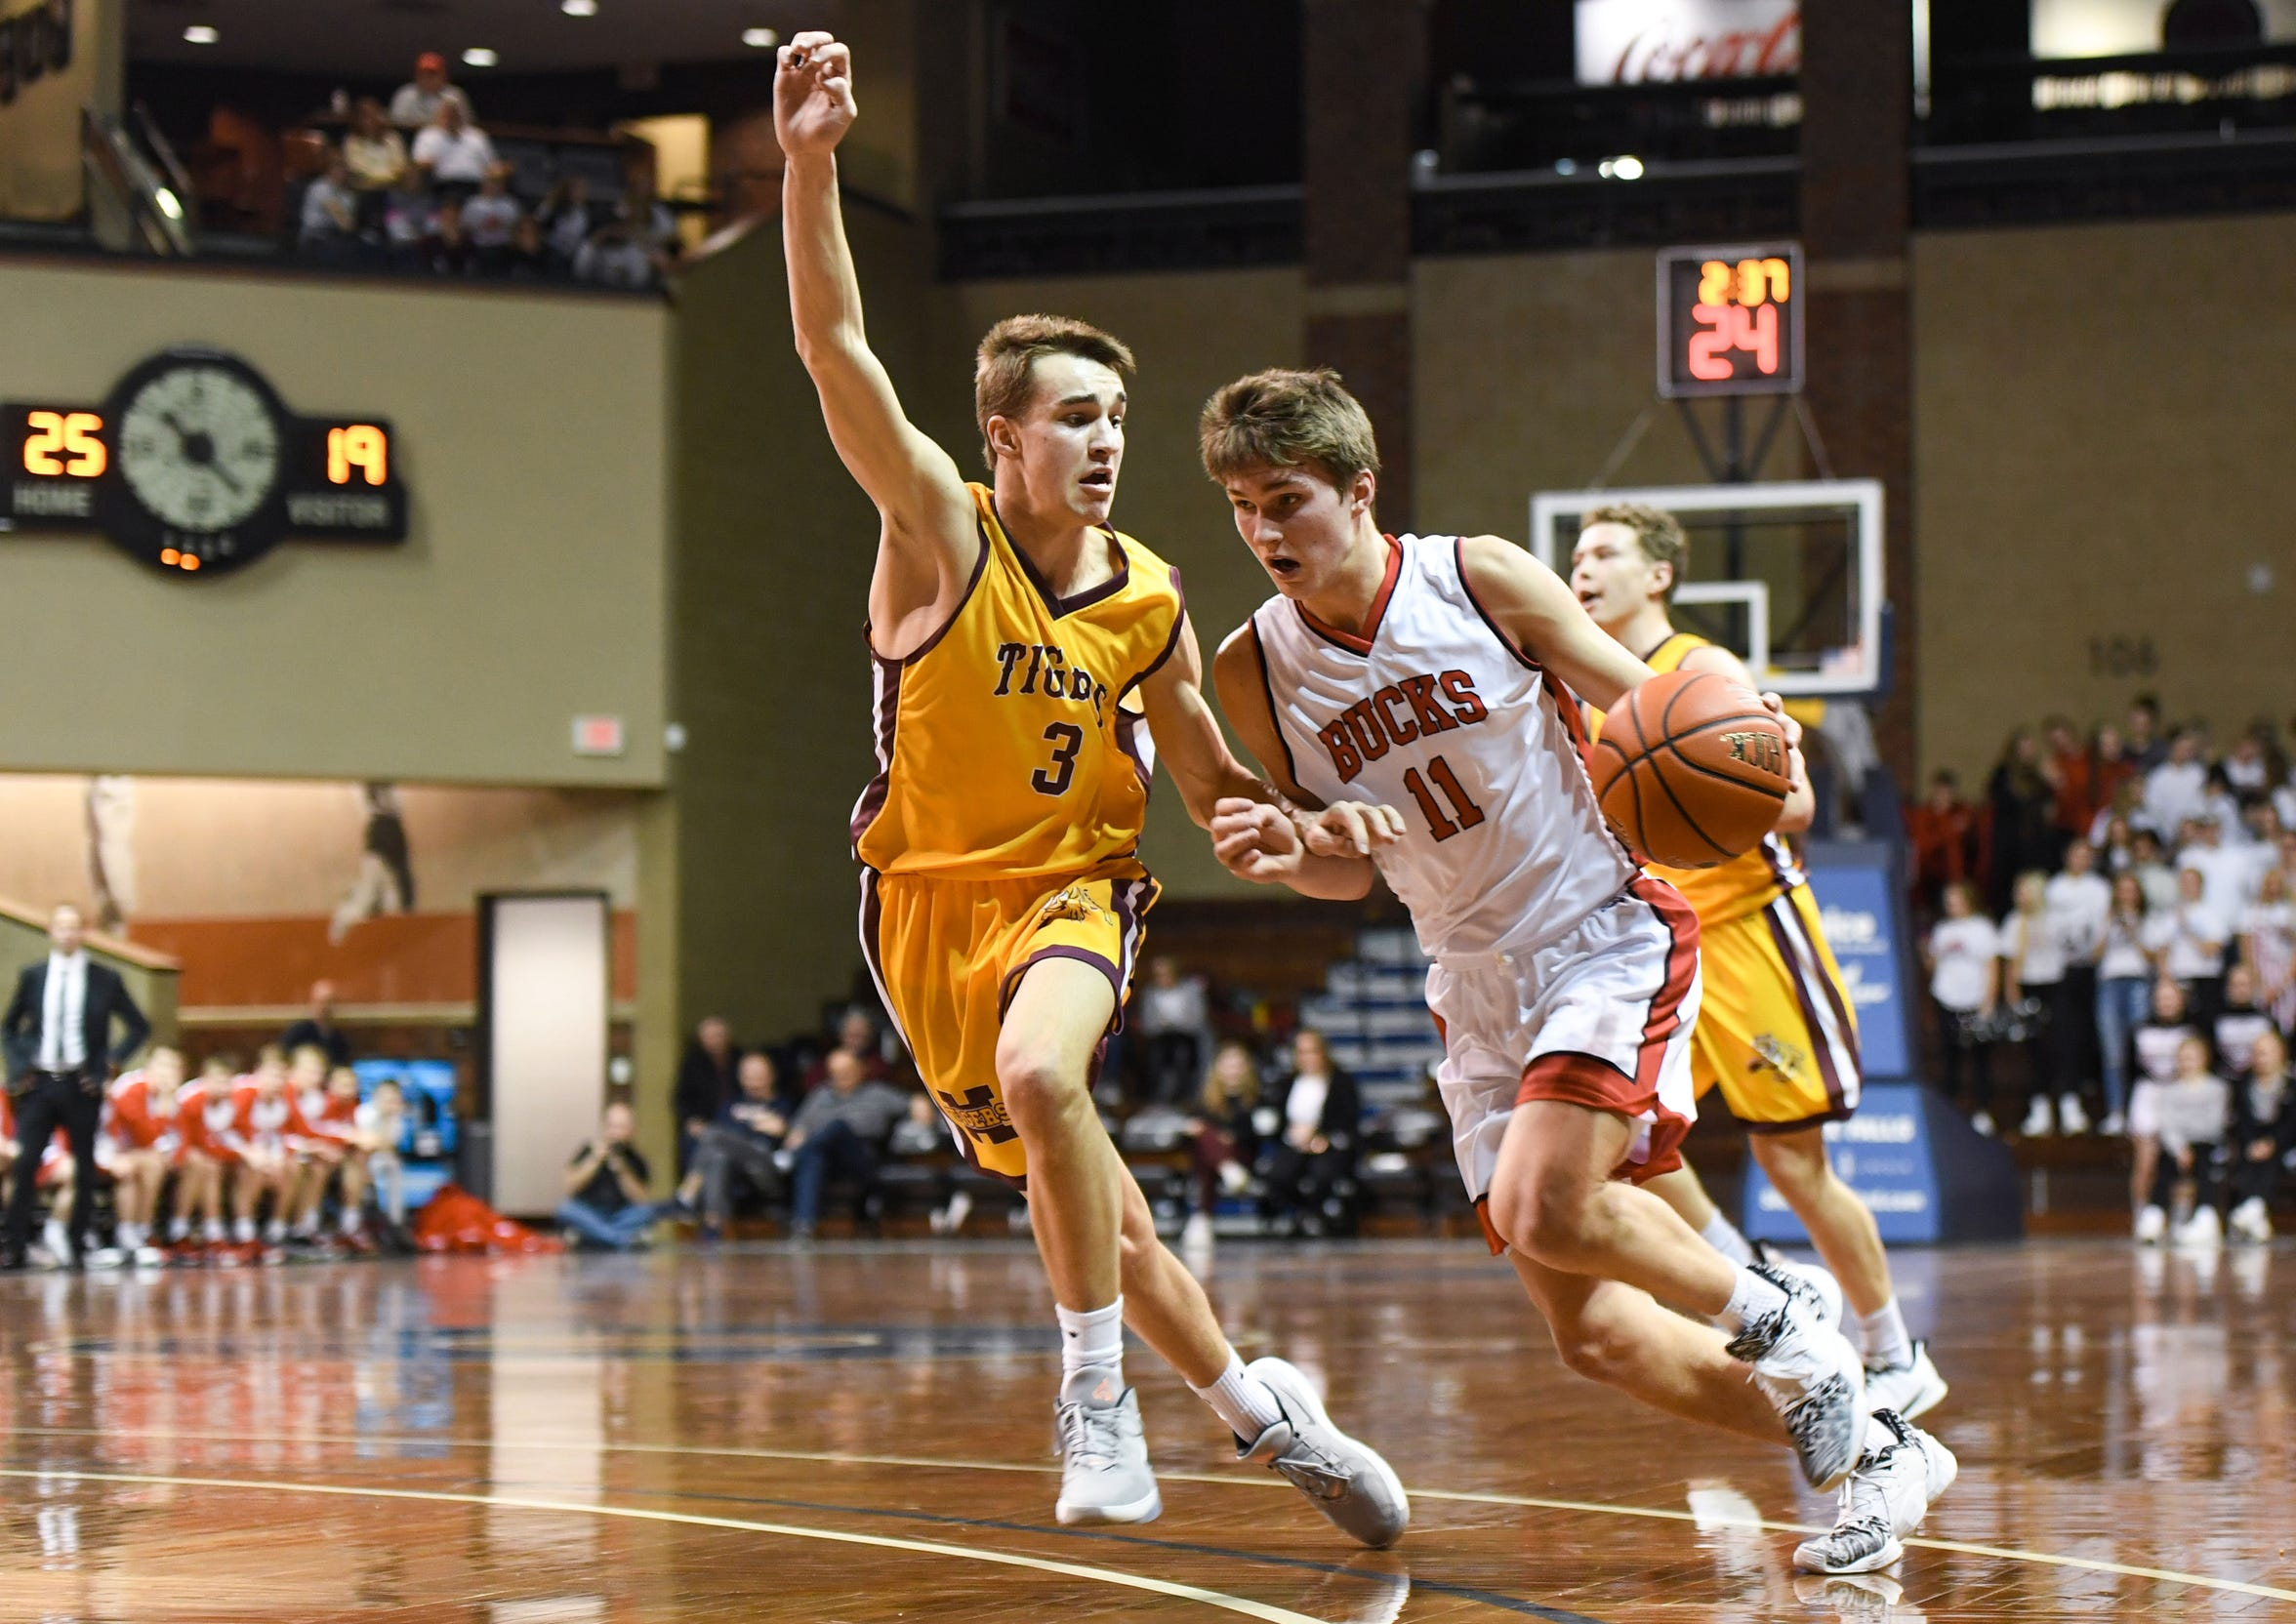 Conner Geddes of Harrisburg guards Cooper Cornemann of Yankton during the Throwback Classic on Thursday, Feb. 6, at the Sanford Pentagon in Sioux Falls.